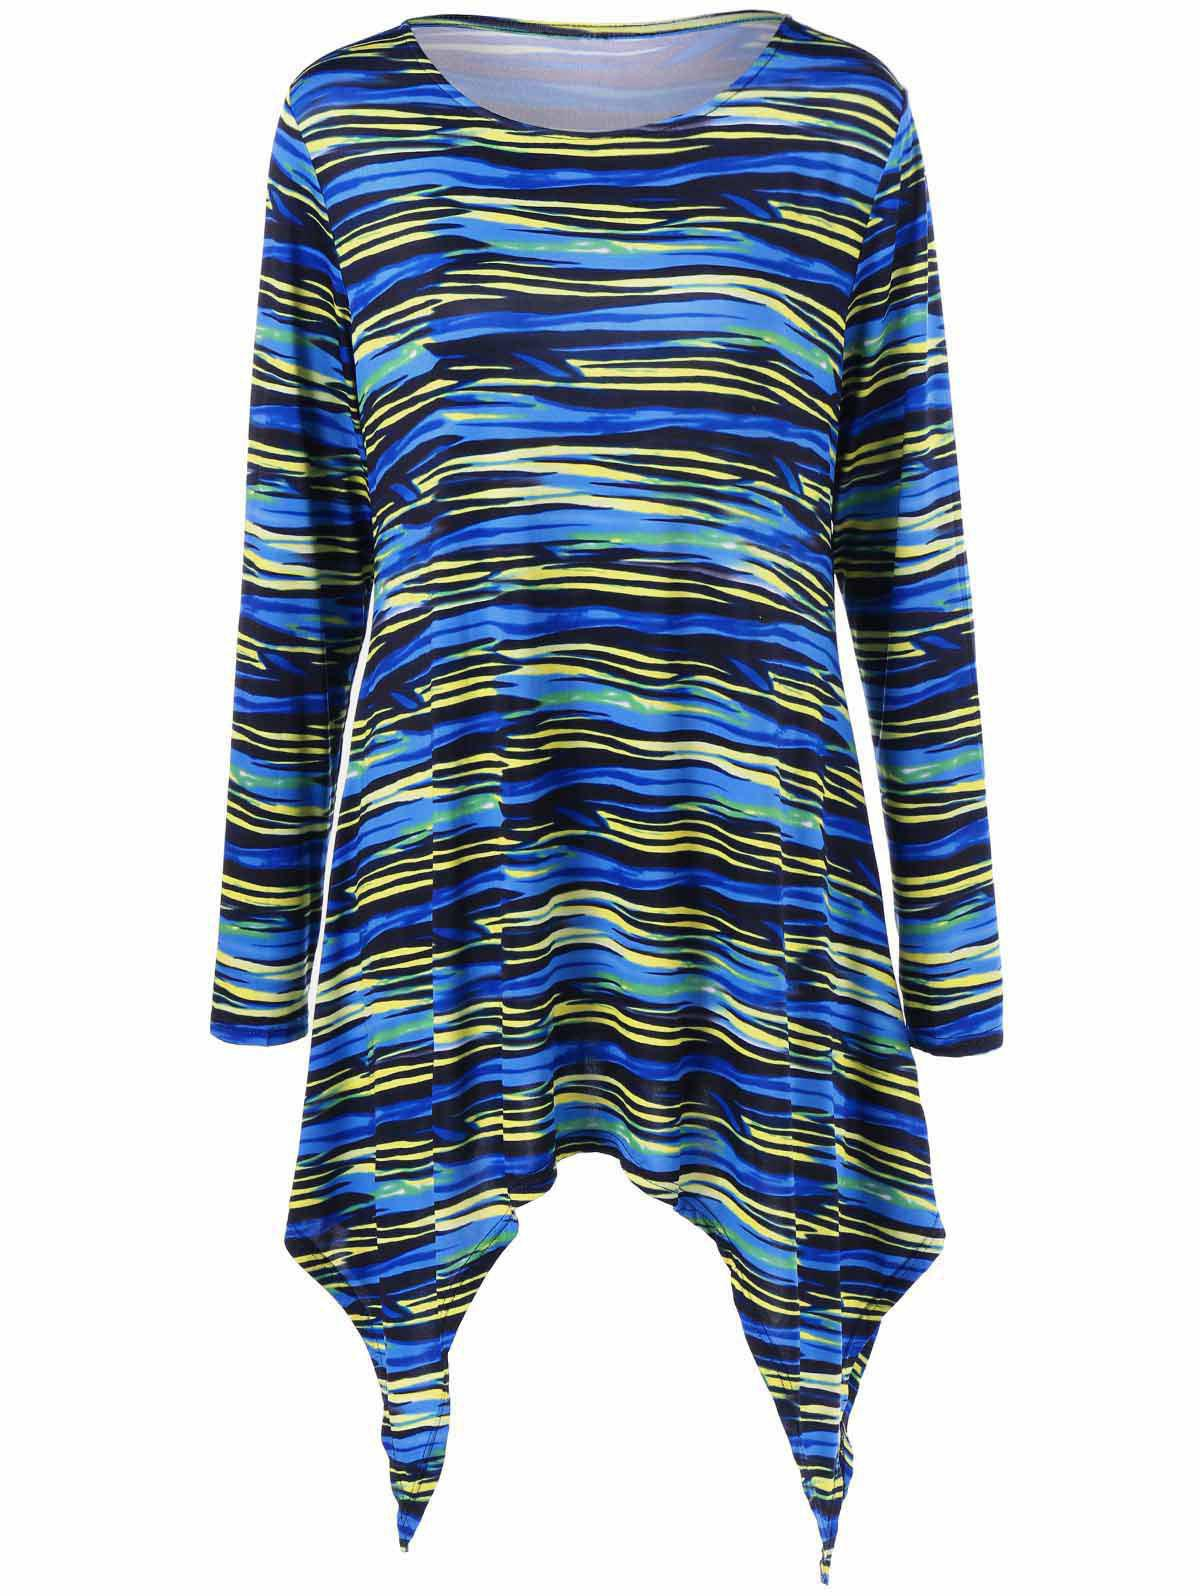 Colorful Striped Plus Size Asymmetric T-Shirt - COLORMIX 4XL